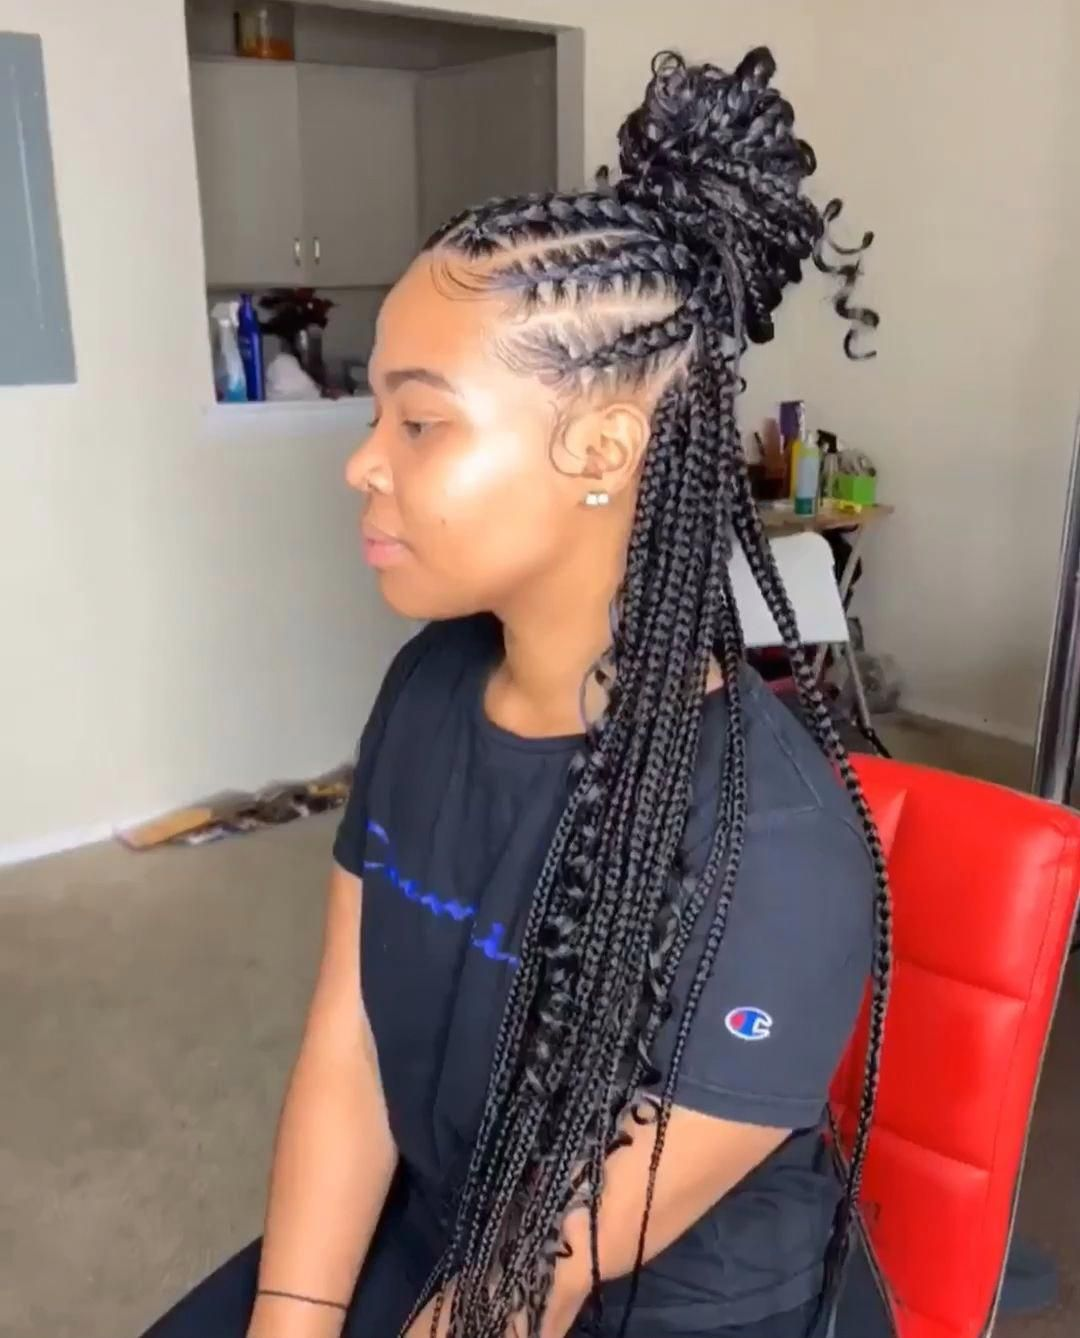 61 Totally Chic And Colorful Box Braids Hairstyles To Wear With Images Girls Hairstyles Braids Braided Ponytail Hairstyles